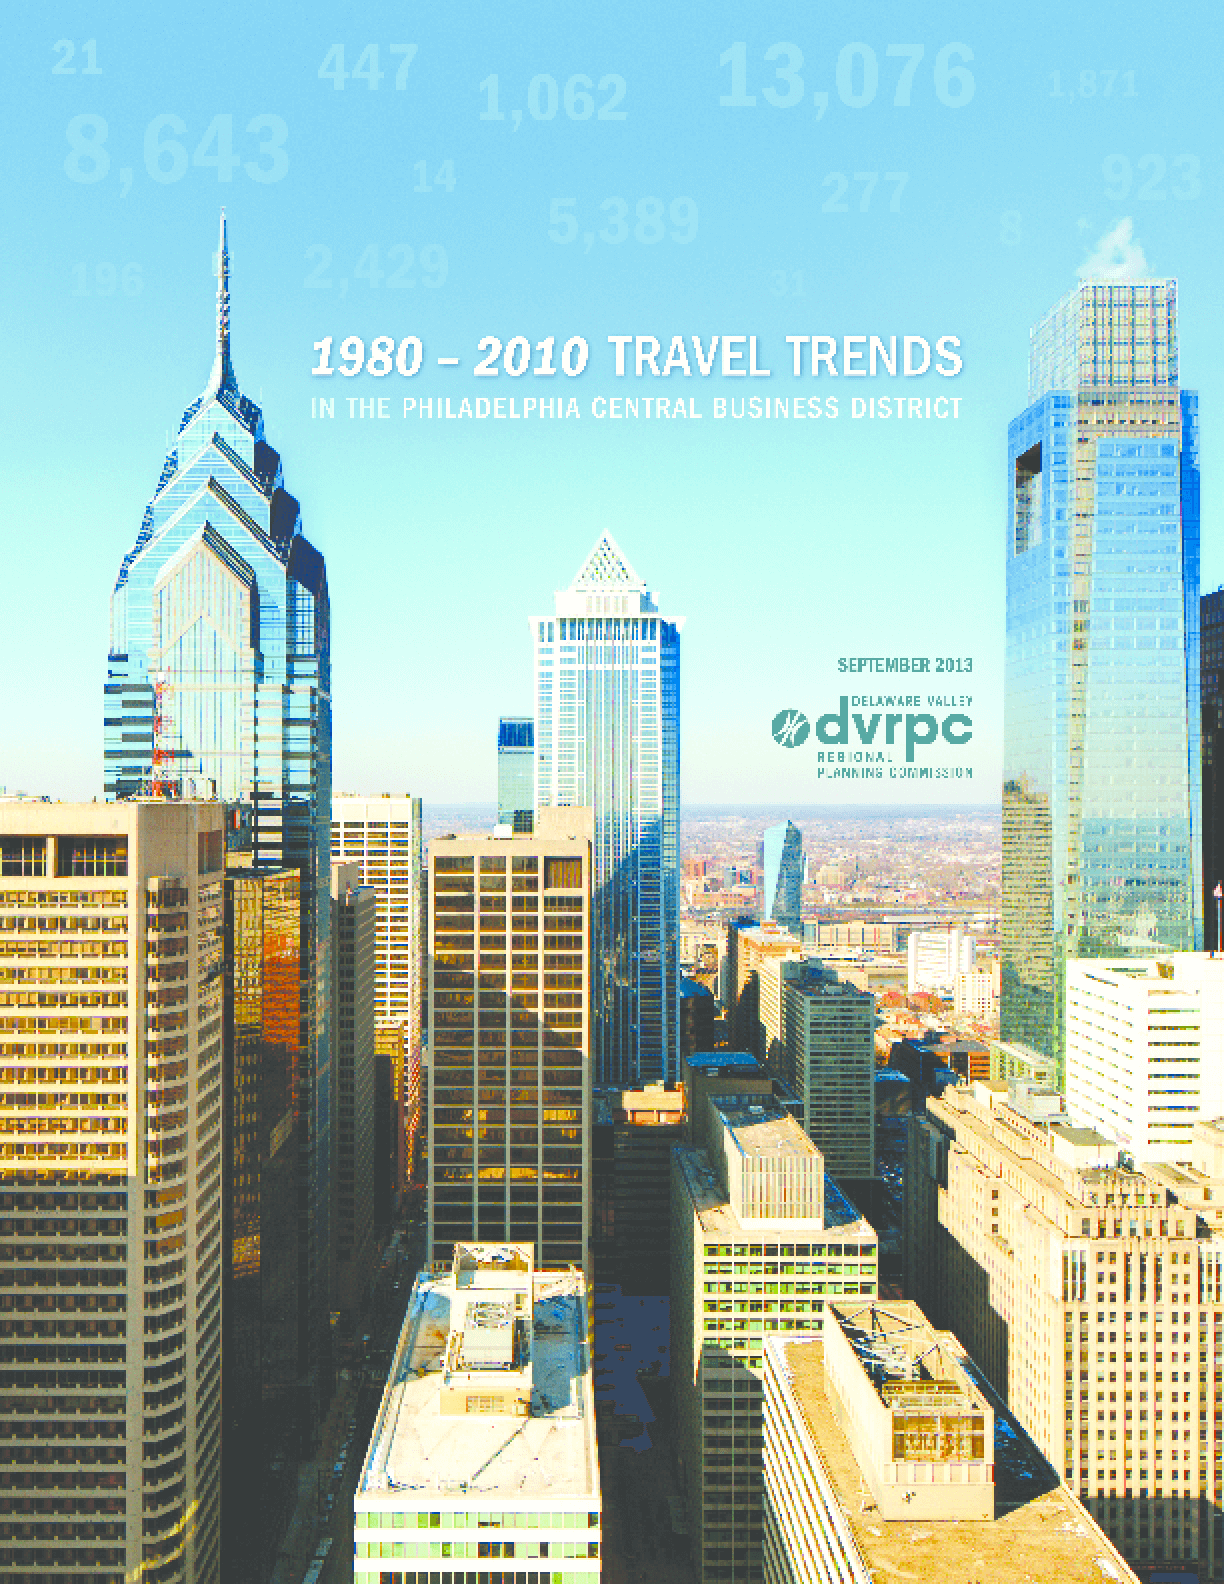 1980-2010 Travel Trends In The Philadelphia Central Business District